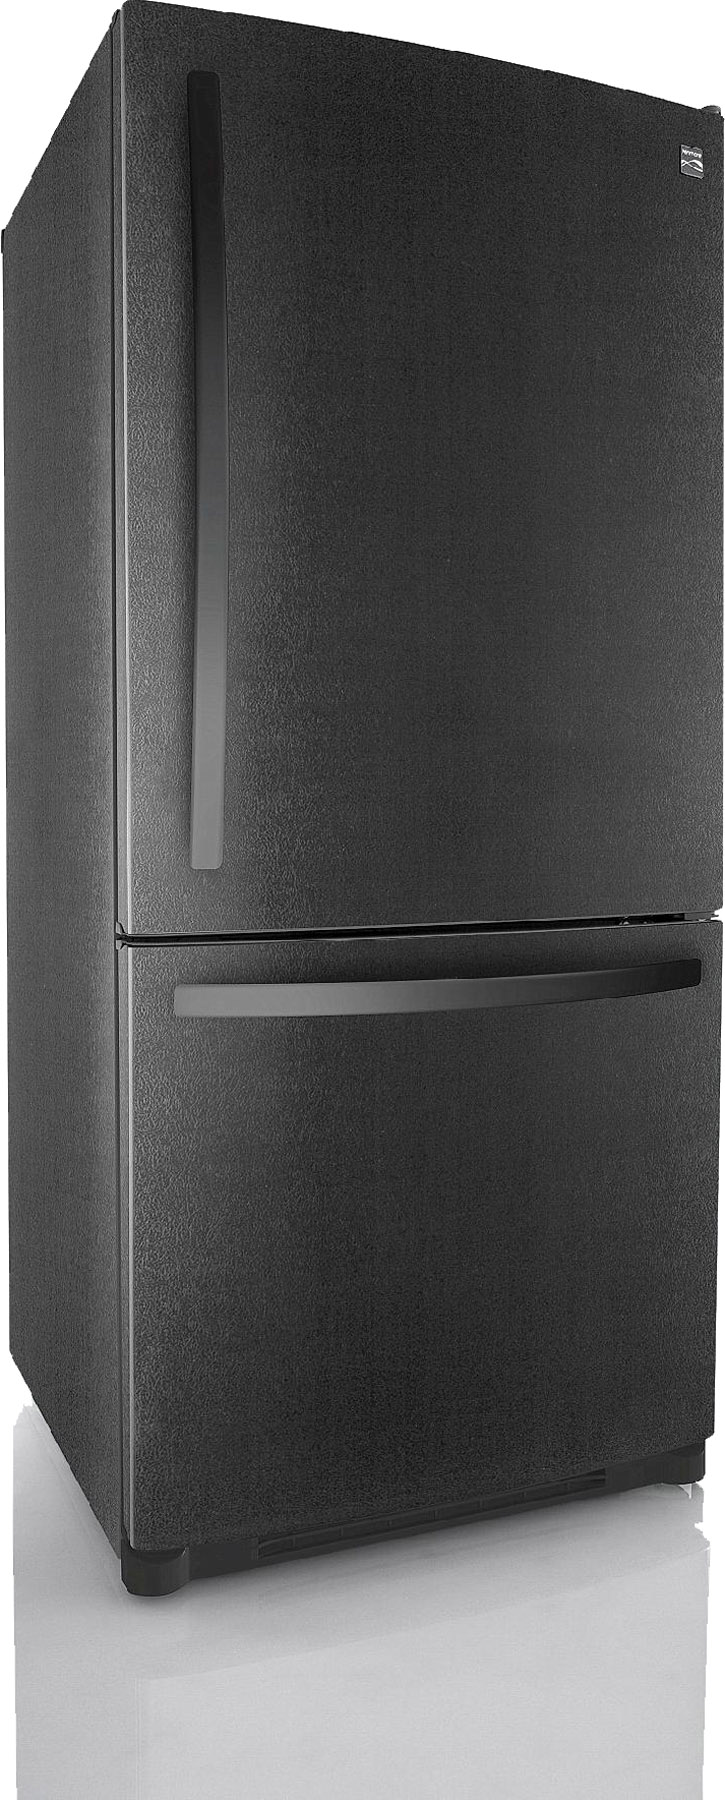 Kenmore 19.7 cu. ft. Bottom Freezer Refrigerator